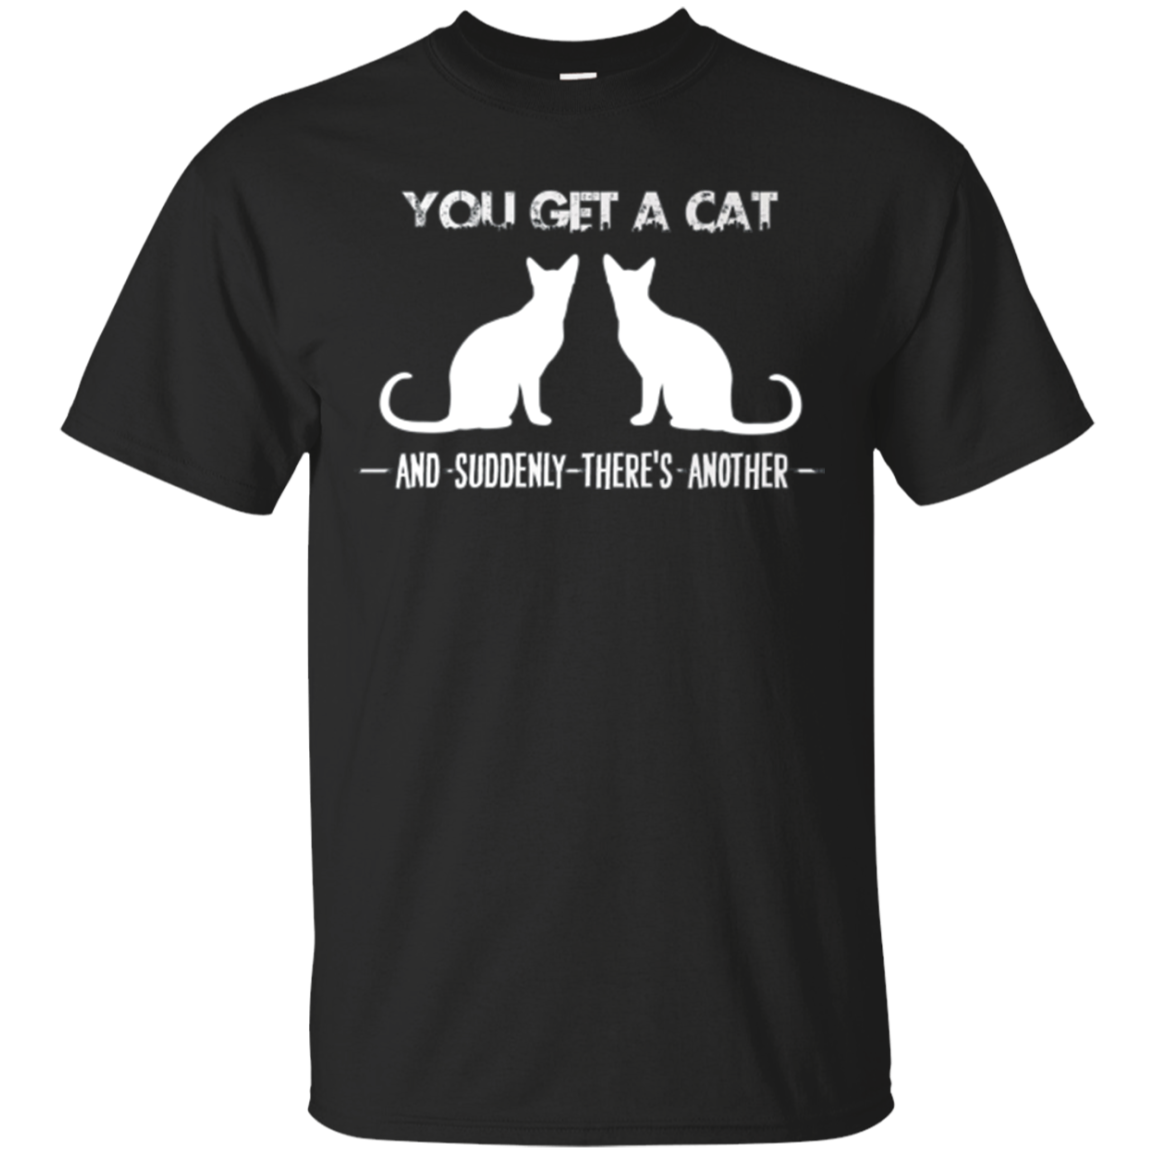 Cat T-shirt - You get a cat and suddenly there's another